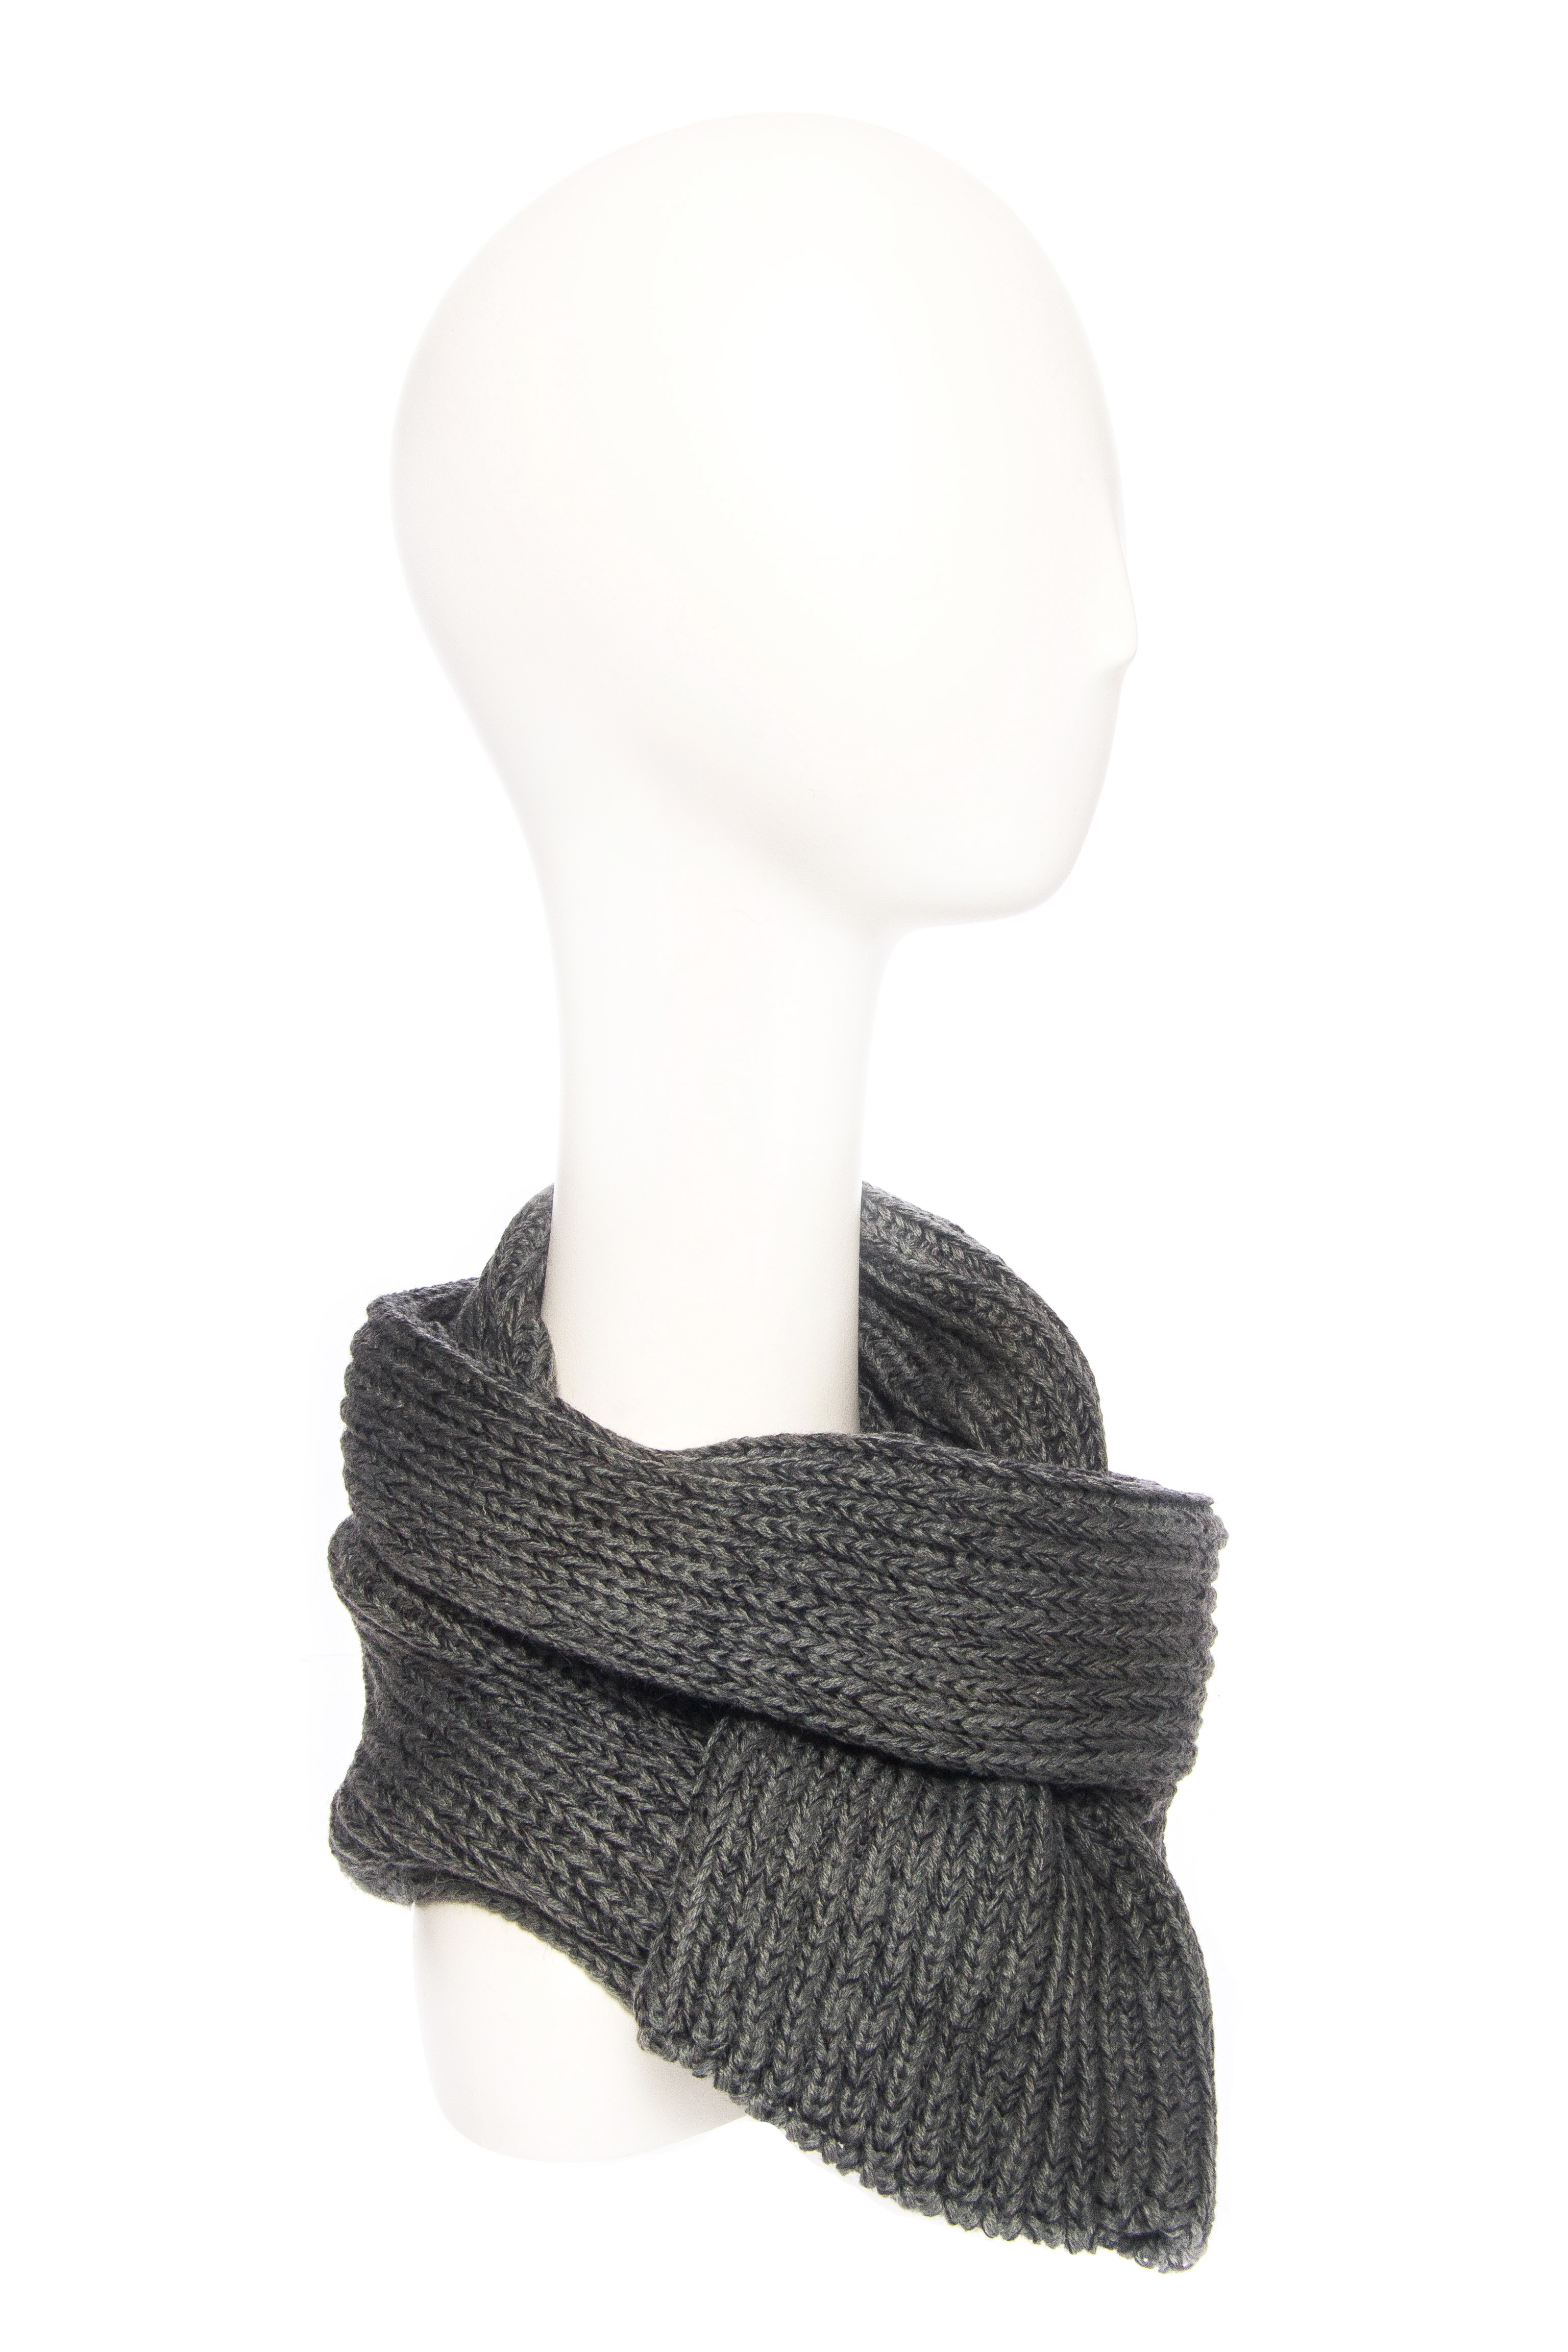 BICKLEY + MITCHELL Ribbed Scarf - Grey